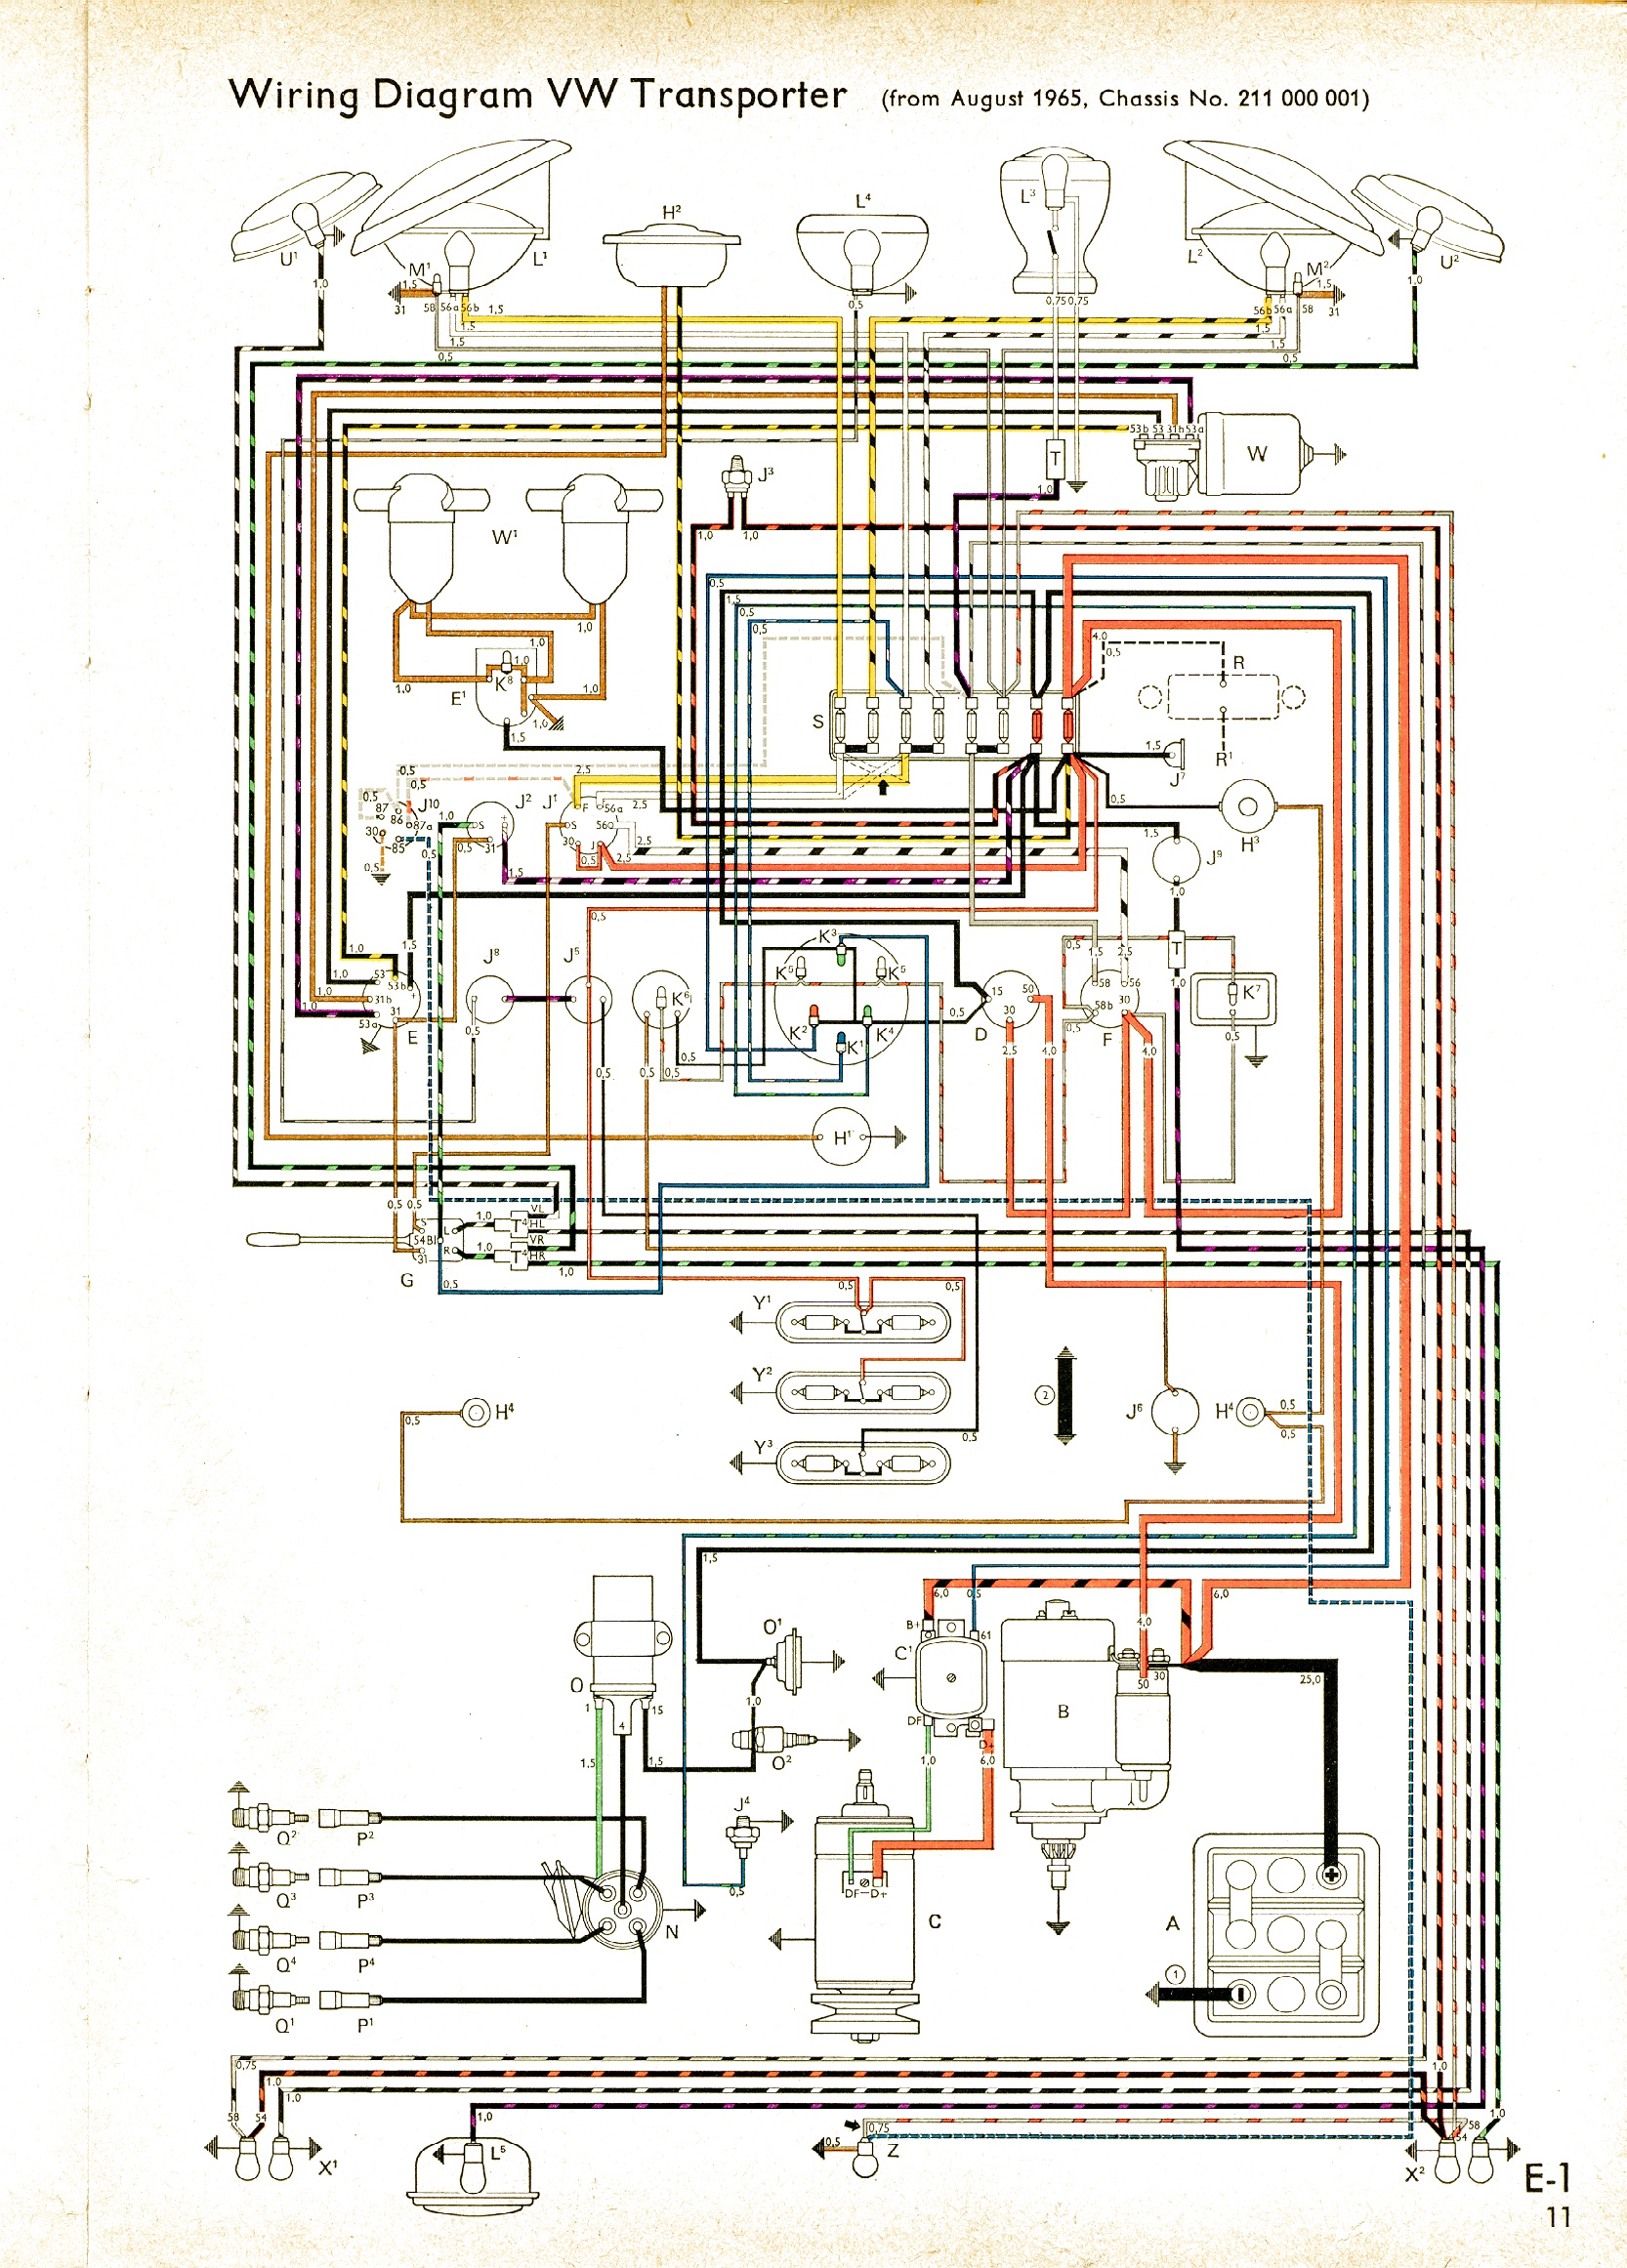 bus 65 vintagebus com vw bus (and other) wiring diagrams vw polo wiring diagram download at mr168.co